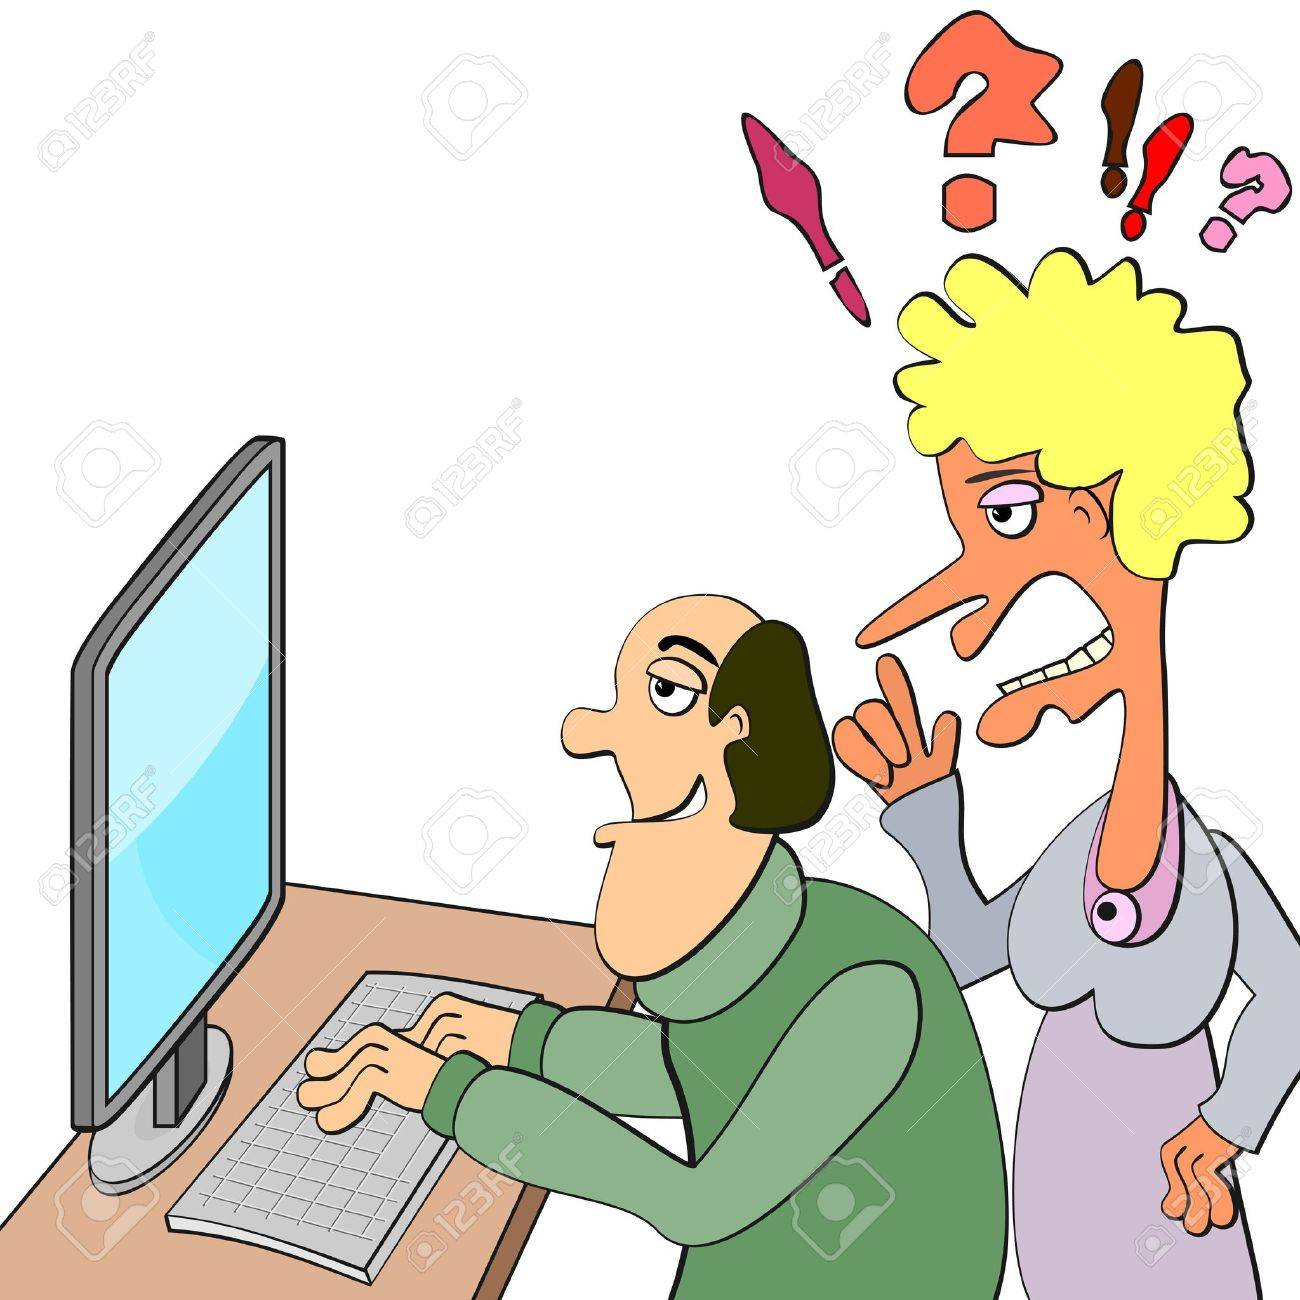 Calm man working or playing on comp and ugly shouting woman Stock Vector - 18845684